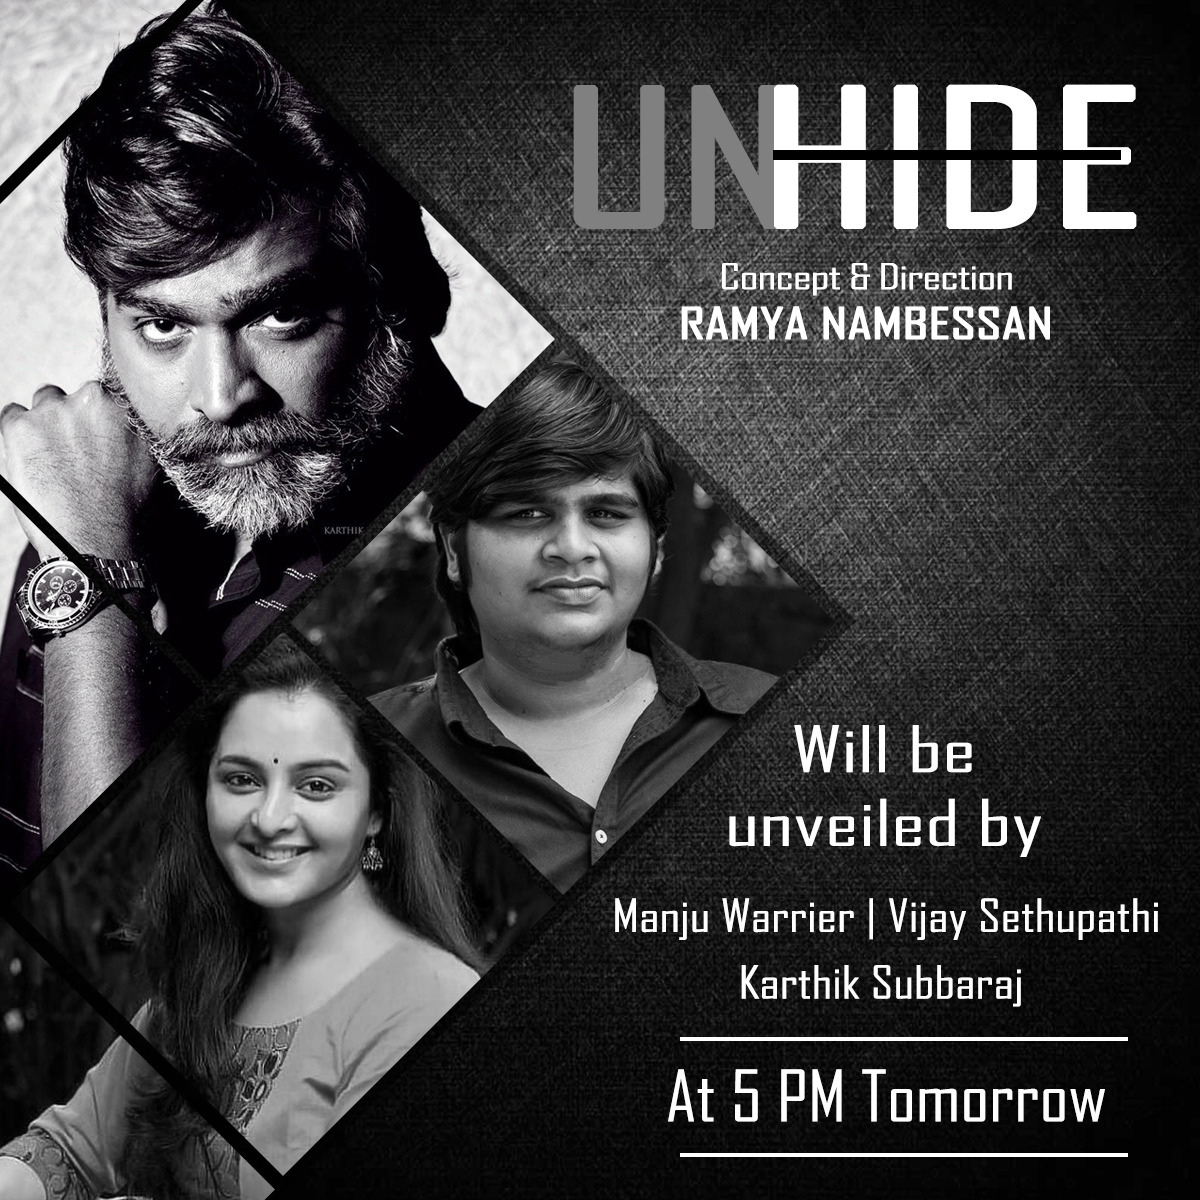 Three cheers to the awesome three for unveiling the powerful #UNHIDE tom 5pm IST. @nambessan_ramya get ready for all the appreciations and all the questions. More power to you. #Ramyanambessanencore #RamyaNambessanDirection1 @sshritha9 @divomovies @DoneChannel1 @gobeatroute